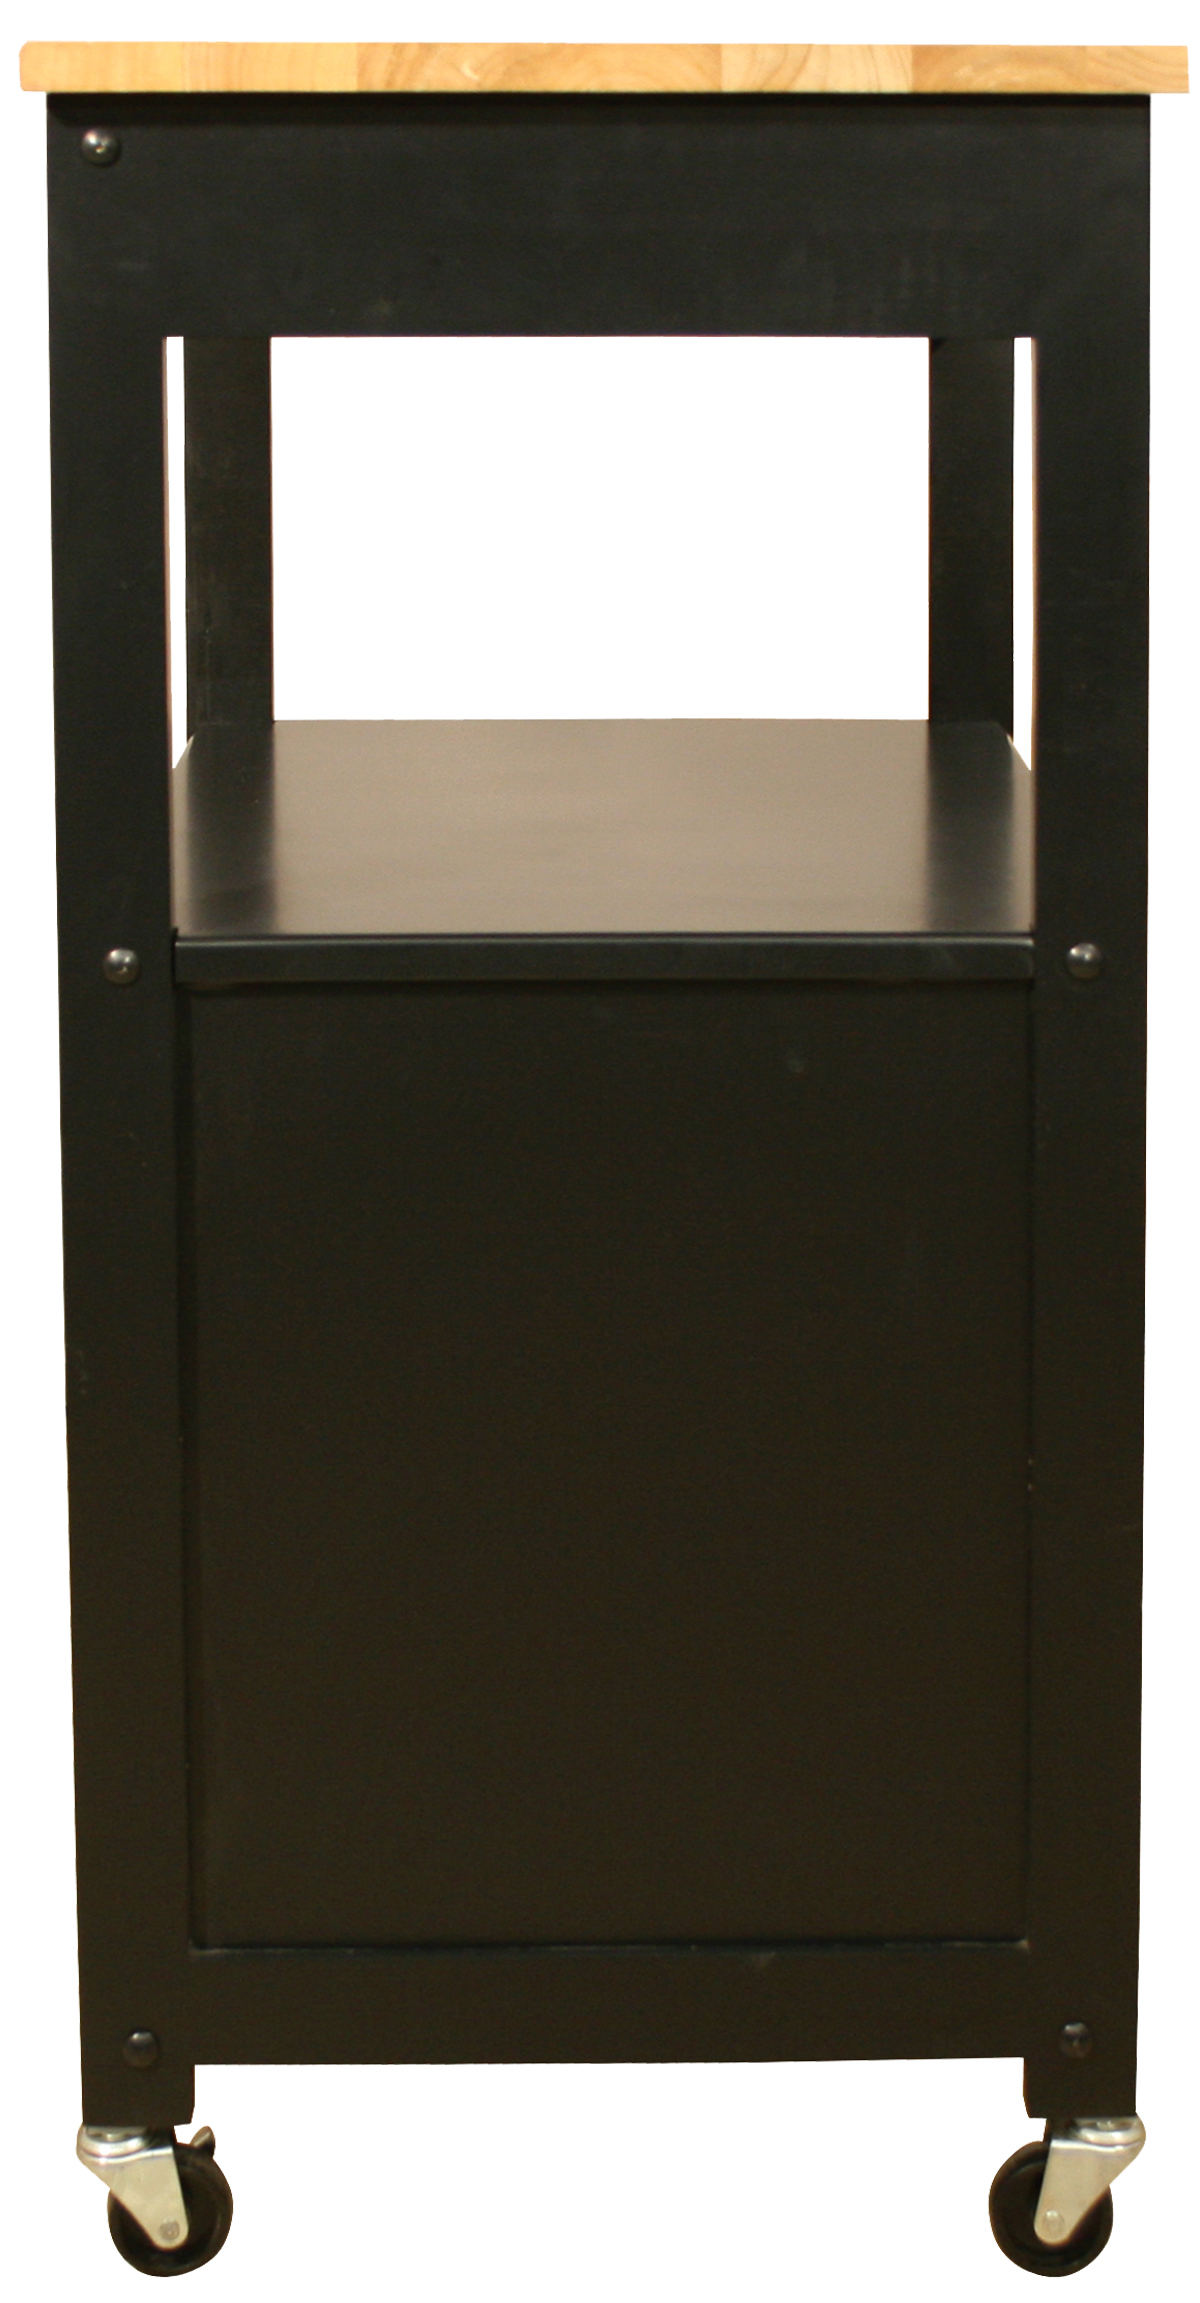 catskill trolley with hardwood top and black base kitchen open shelving the best inspiration amp tips the